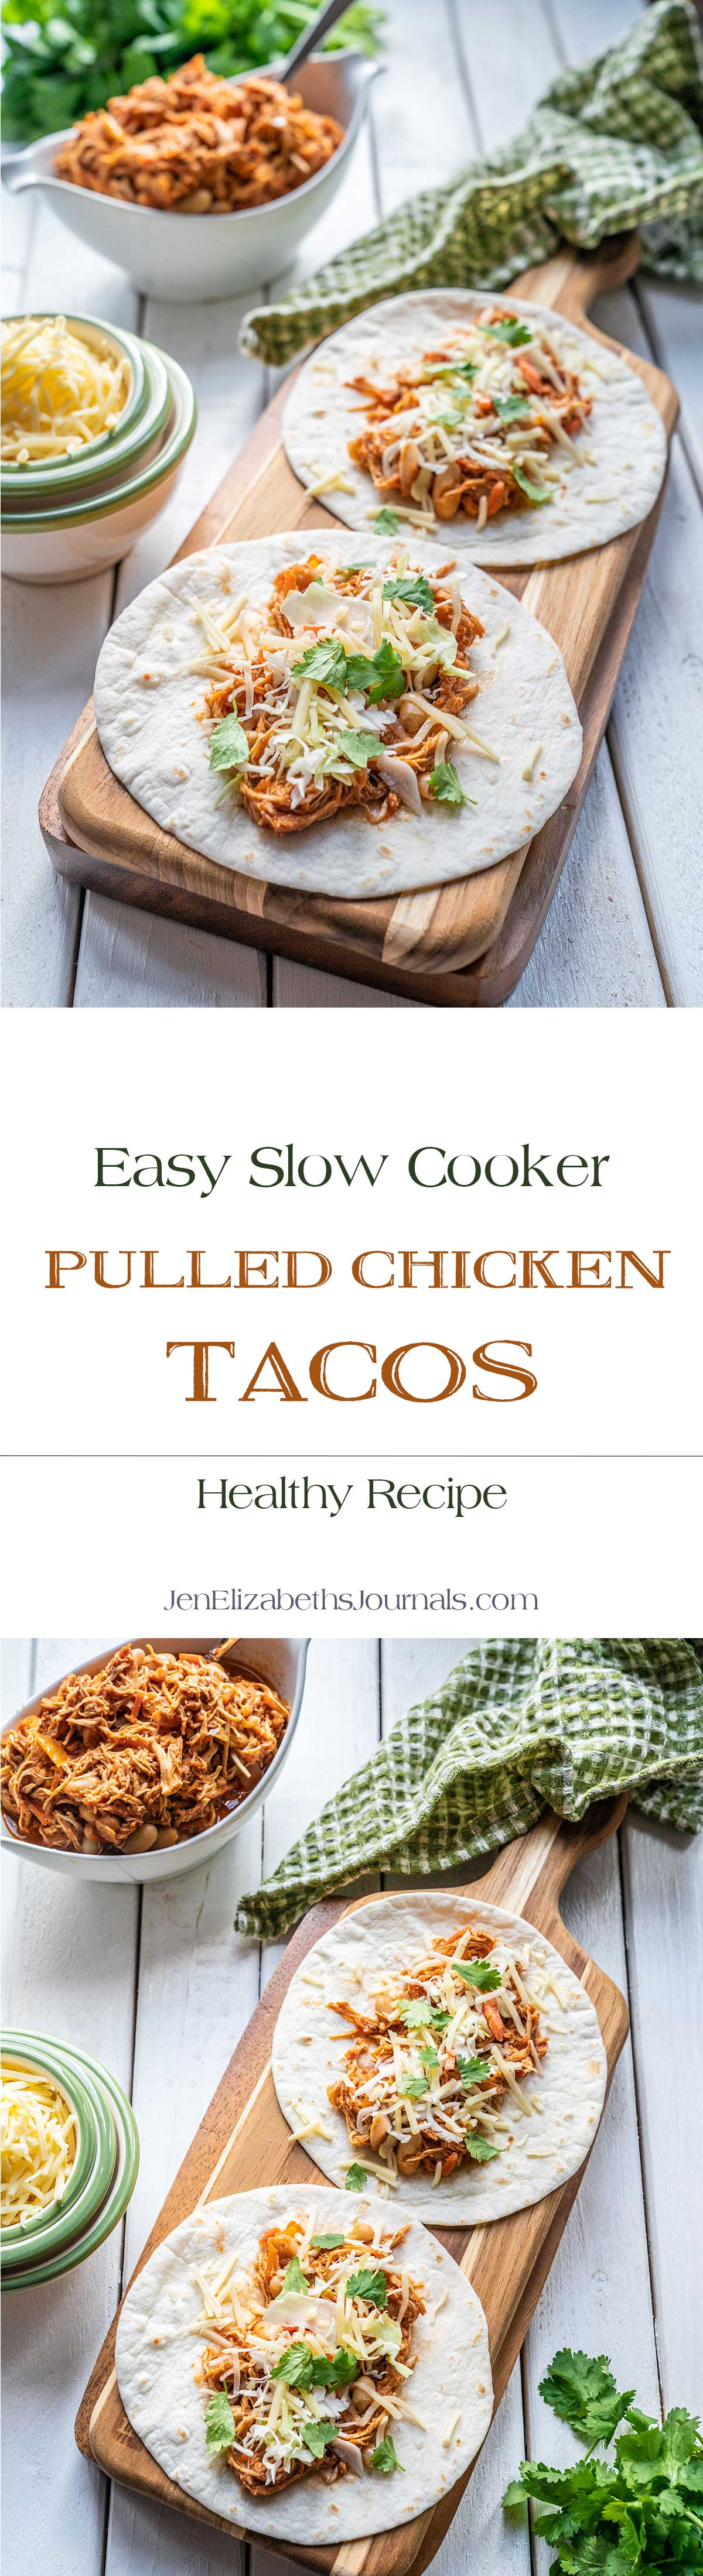 Easy-and-Healthy-Slow-Cooker-Pulled-Chicken-Tacos